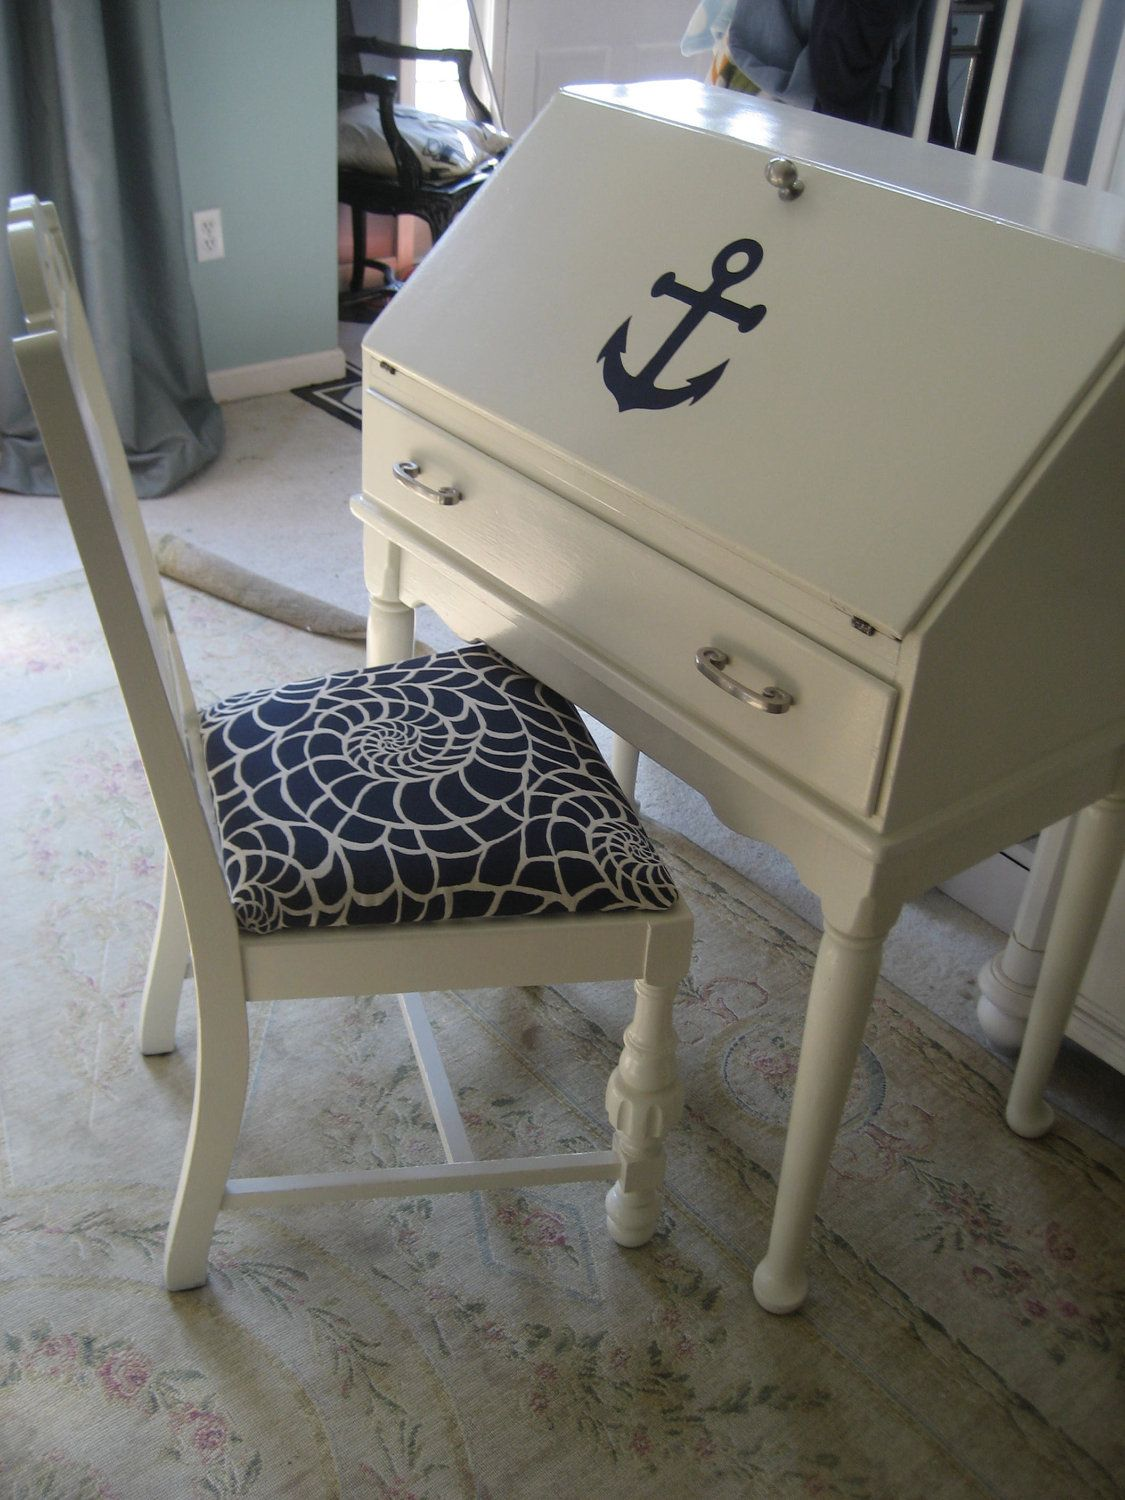 Charmant Nautical Desk And Chair. Give Wooden Furniture A Nautical Makeover With  Chrome Fittings And Navy And White Paint And Fabric.